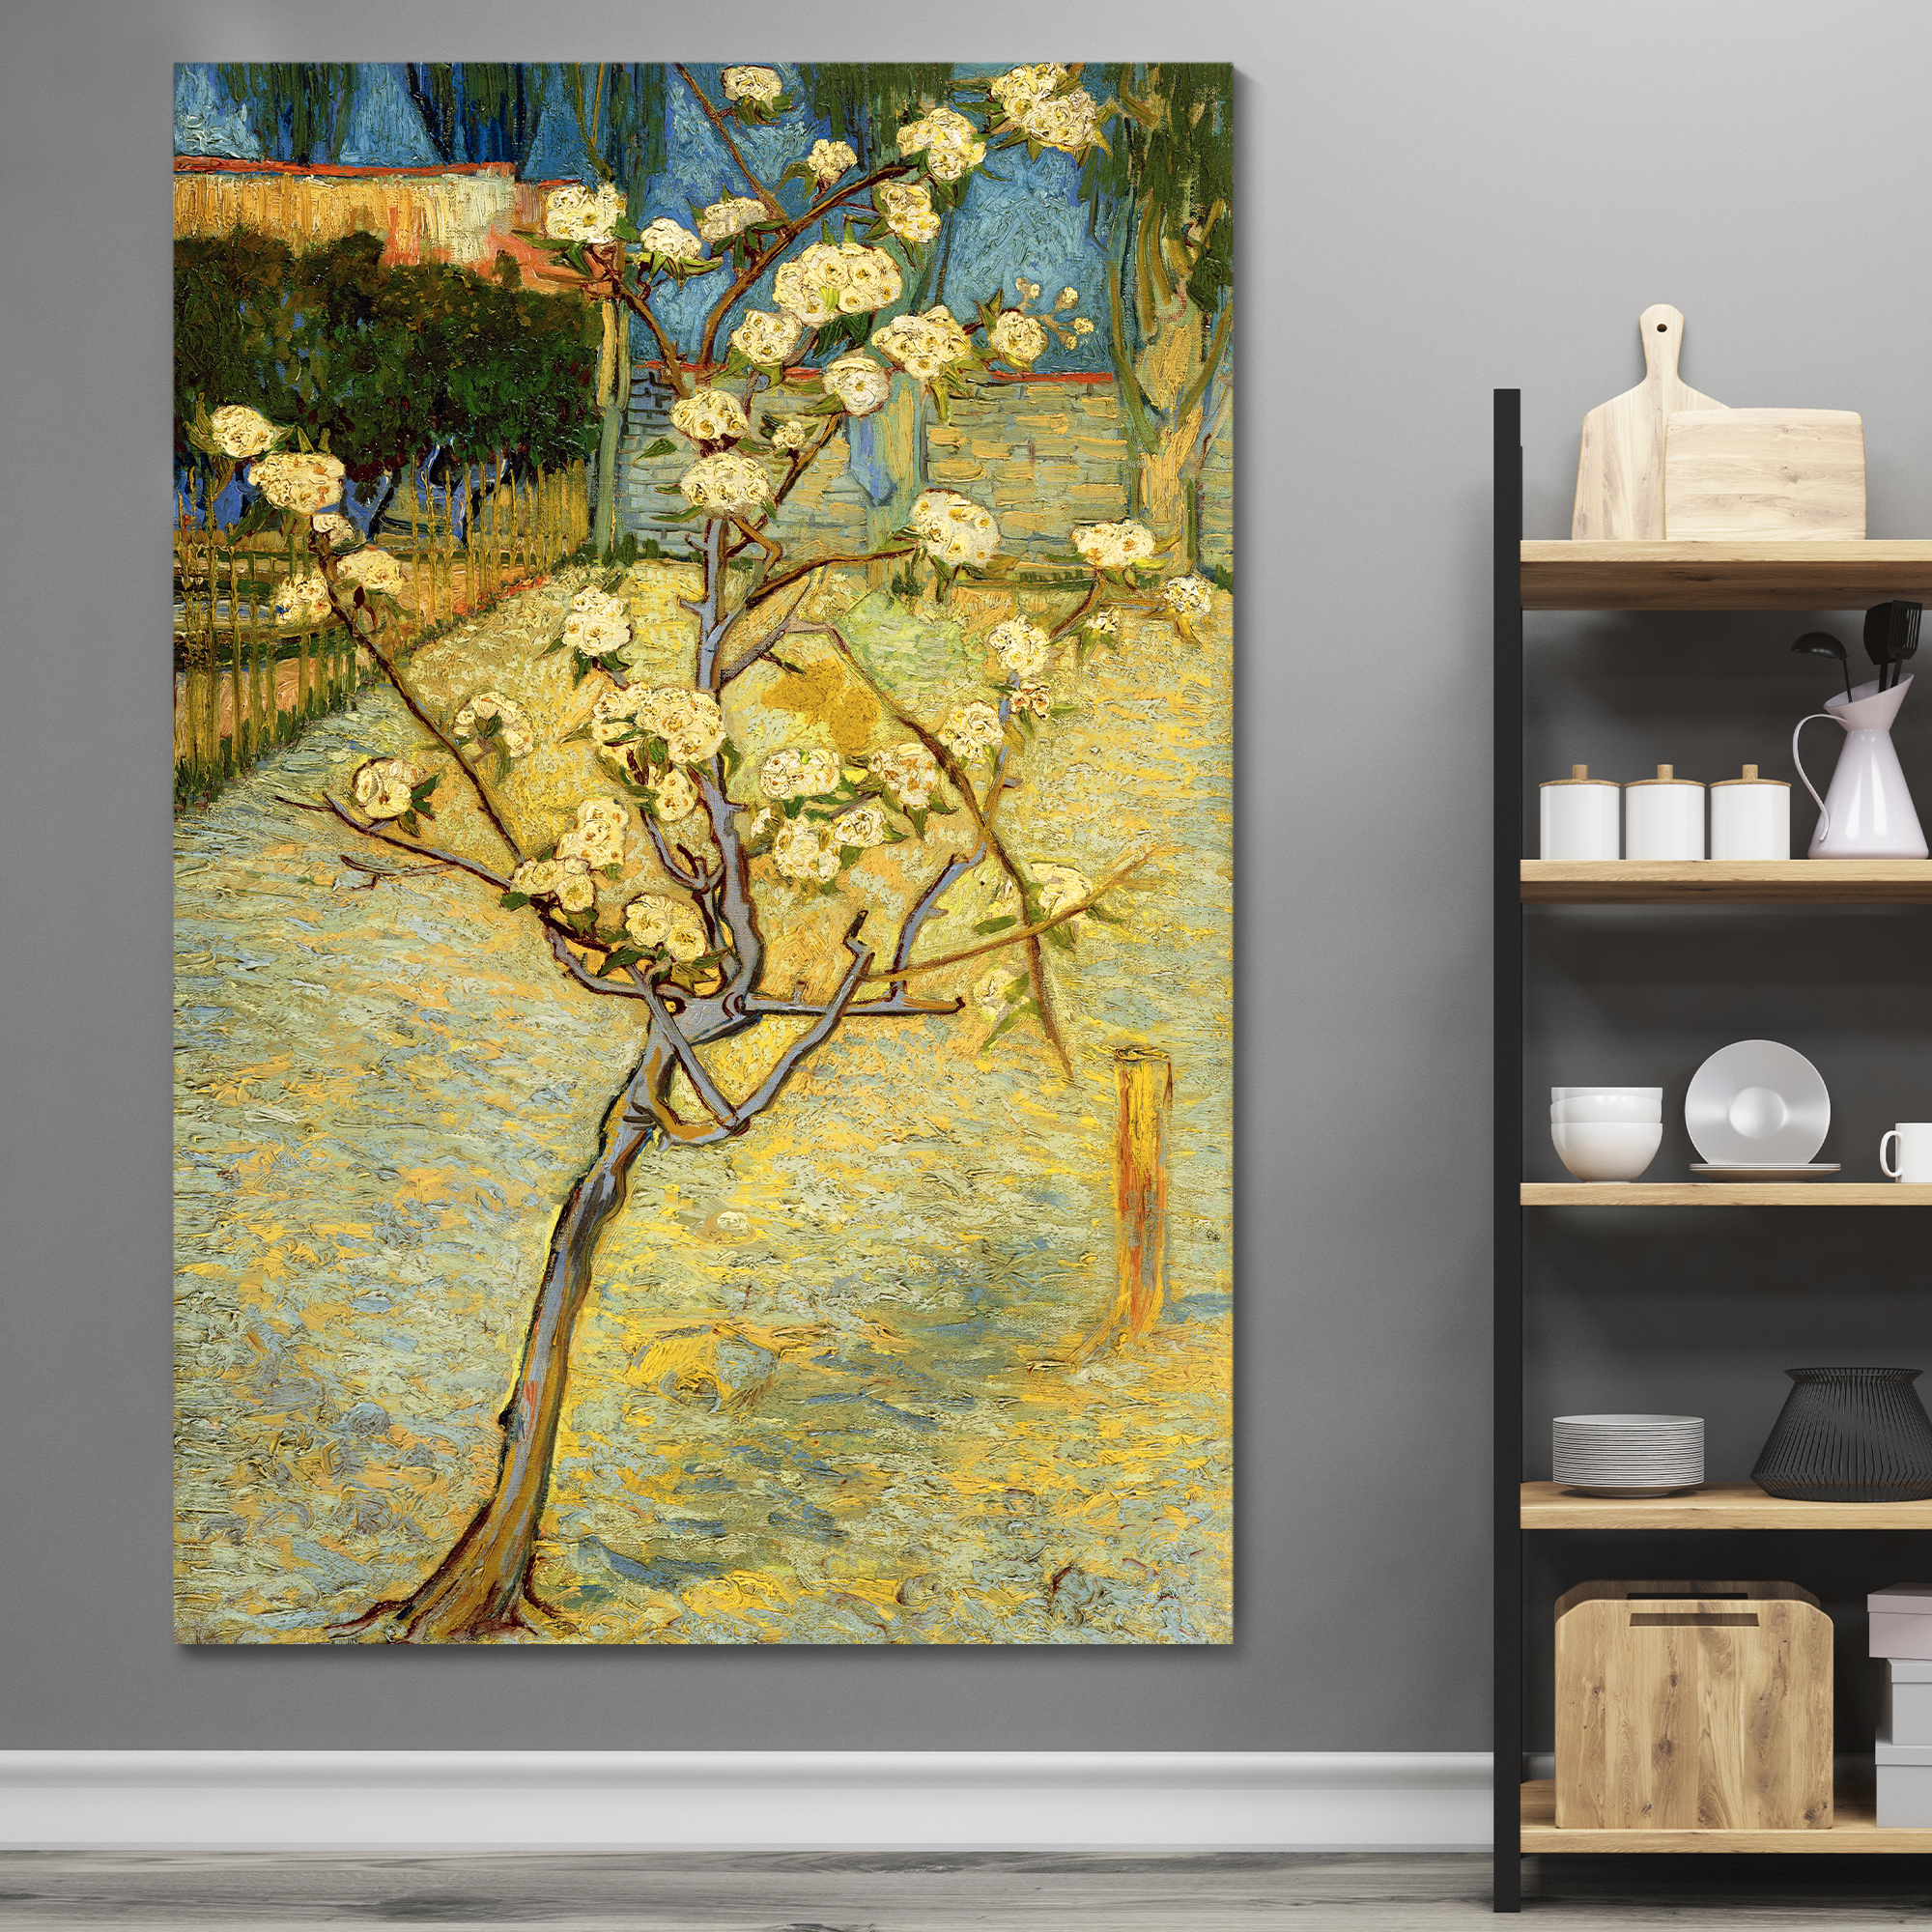 Small Pear Tree in Blossom by Vincent Van Gogh - Canvas Print Wall Art Famous Oil Painting Reproduction - 16